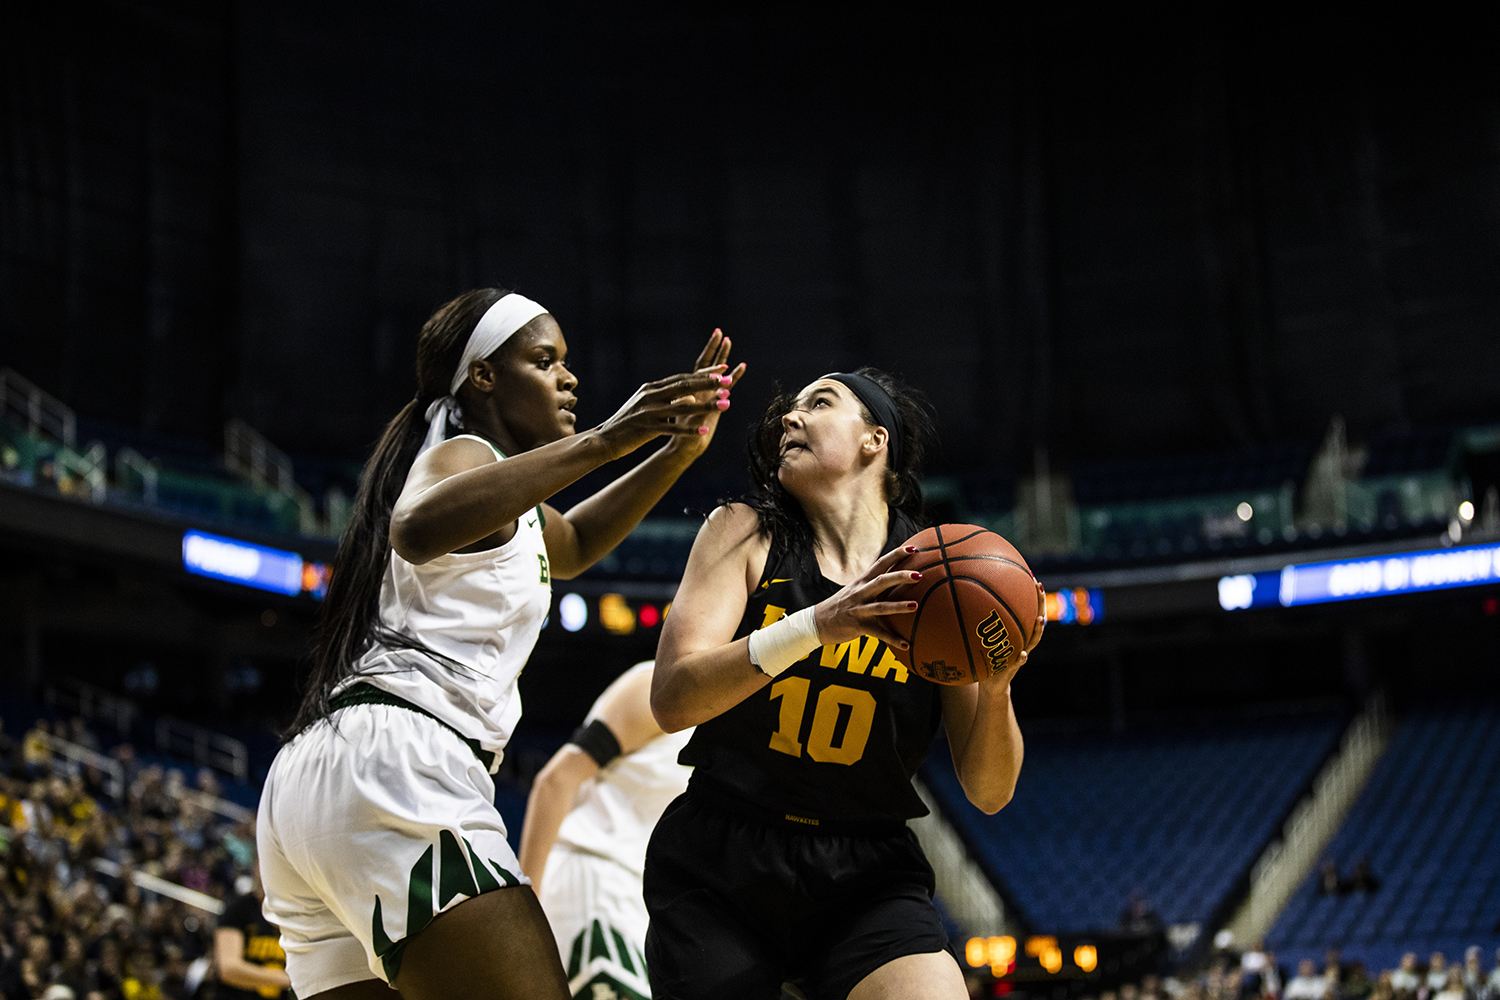 Iowa+center+Megan+Gustafson+prepares+to+shoot+the+ball+past+Baylor+center+Kalani+Brown+during+the+NCAA+Elite+8+game+against+Baylor+at+the+Greensboro+Coliseum+Complex+on+Monday%2C+April+1%2C+2019.+The+Bears+defeated+the+Hawkeyes+85-53.